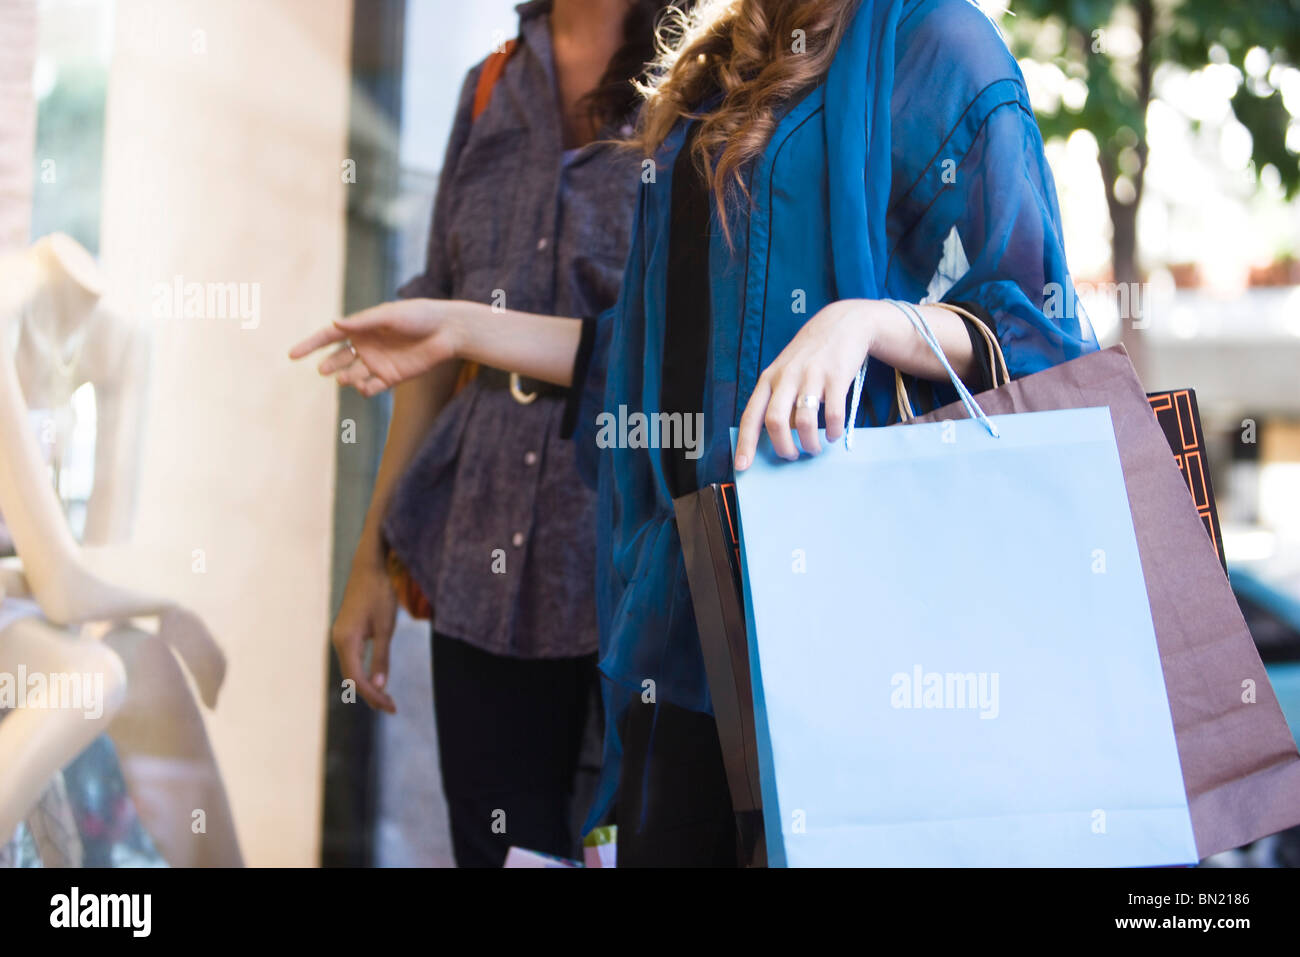 Shoppers looking in shop window, cropped - Stock Image